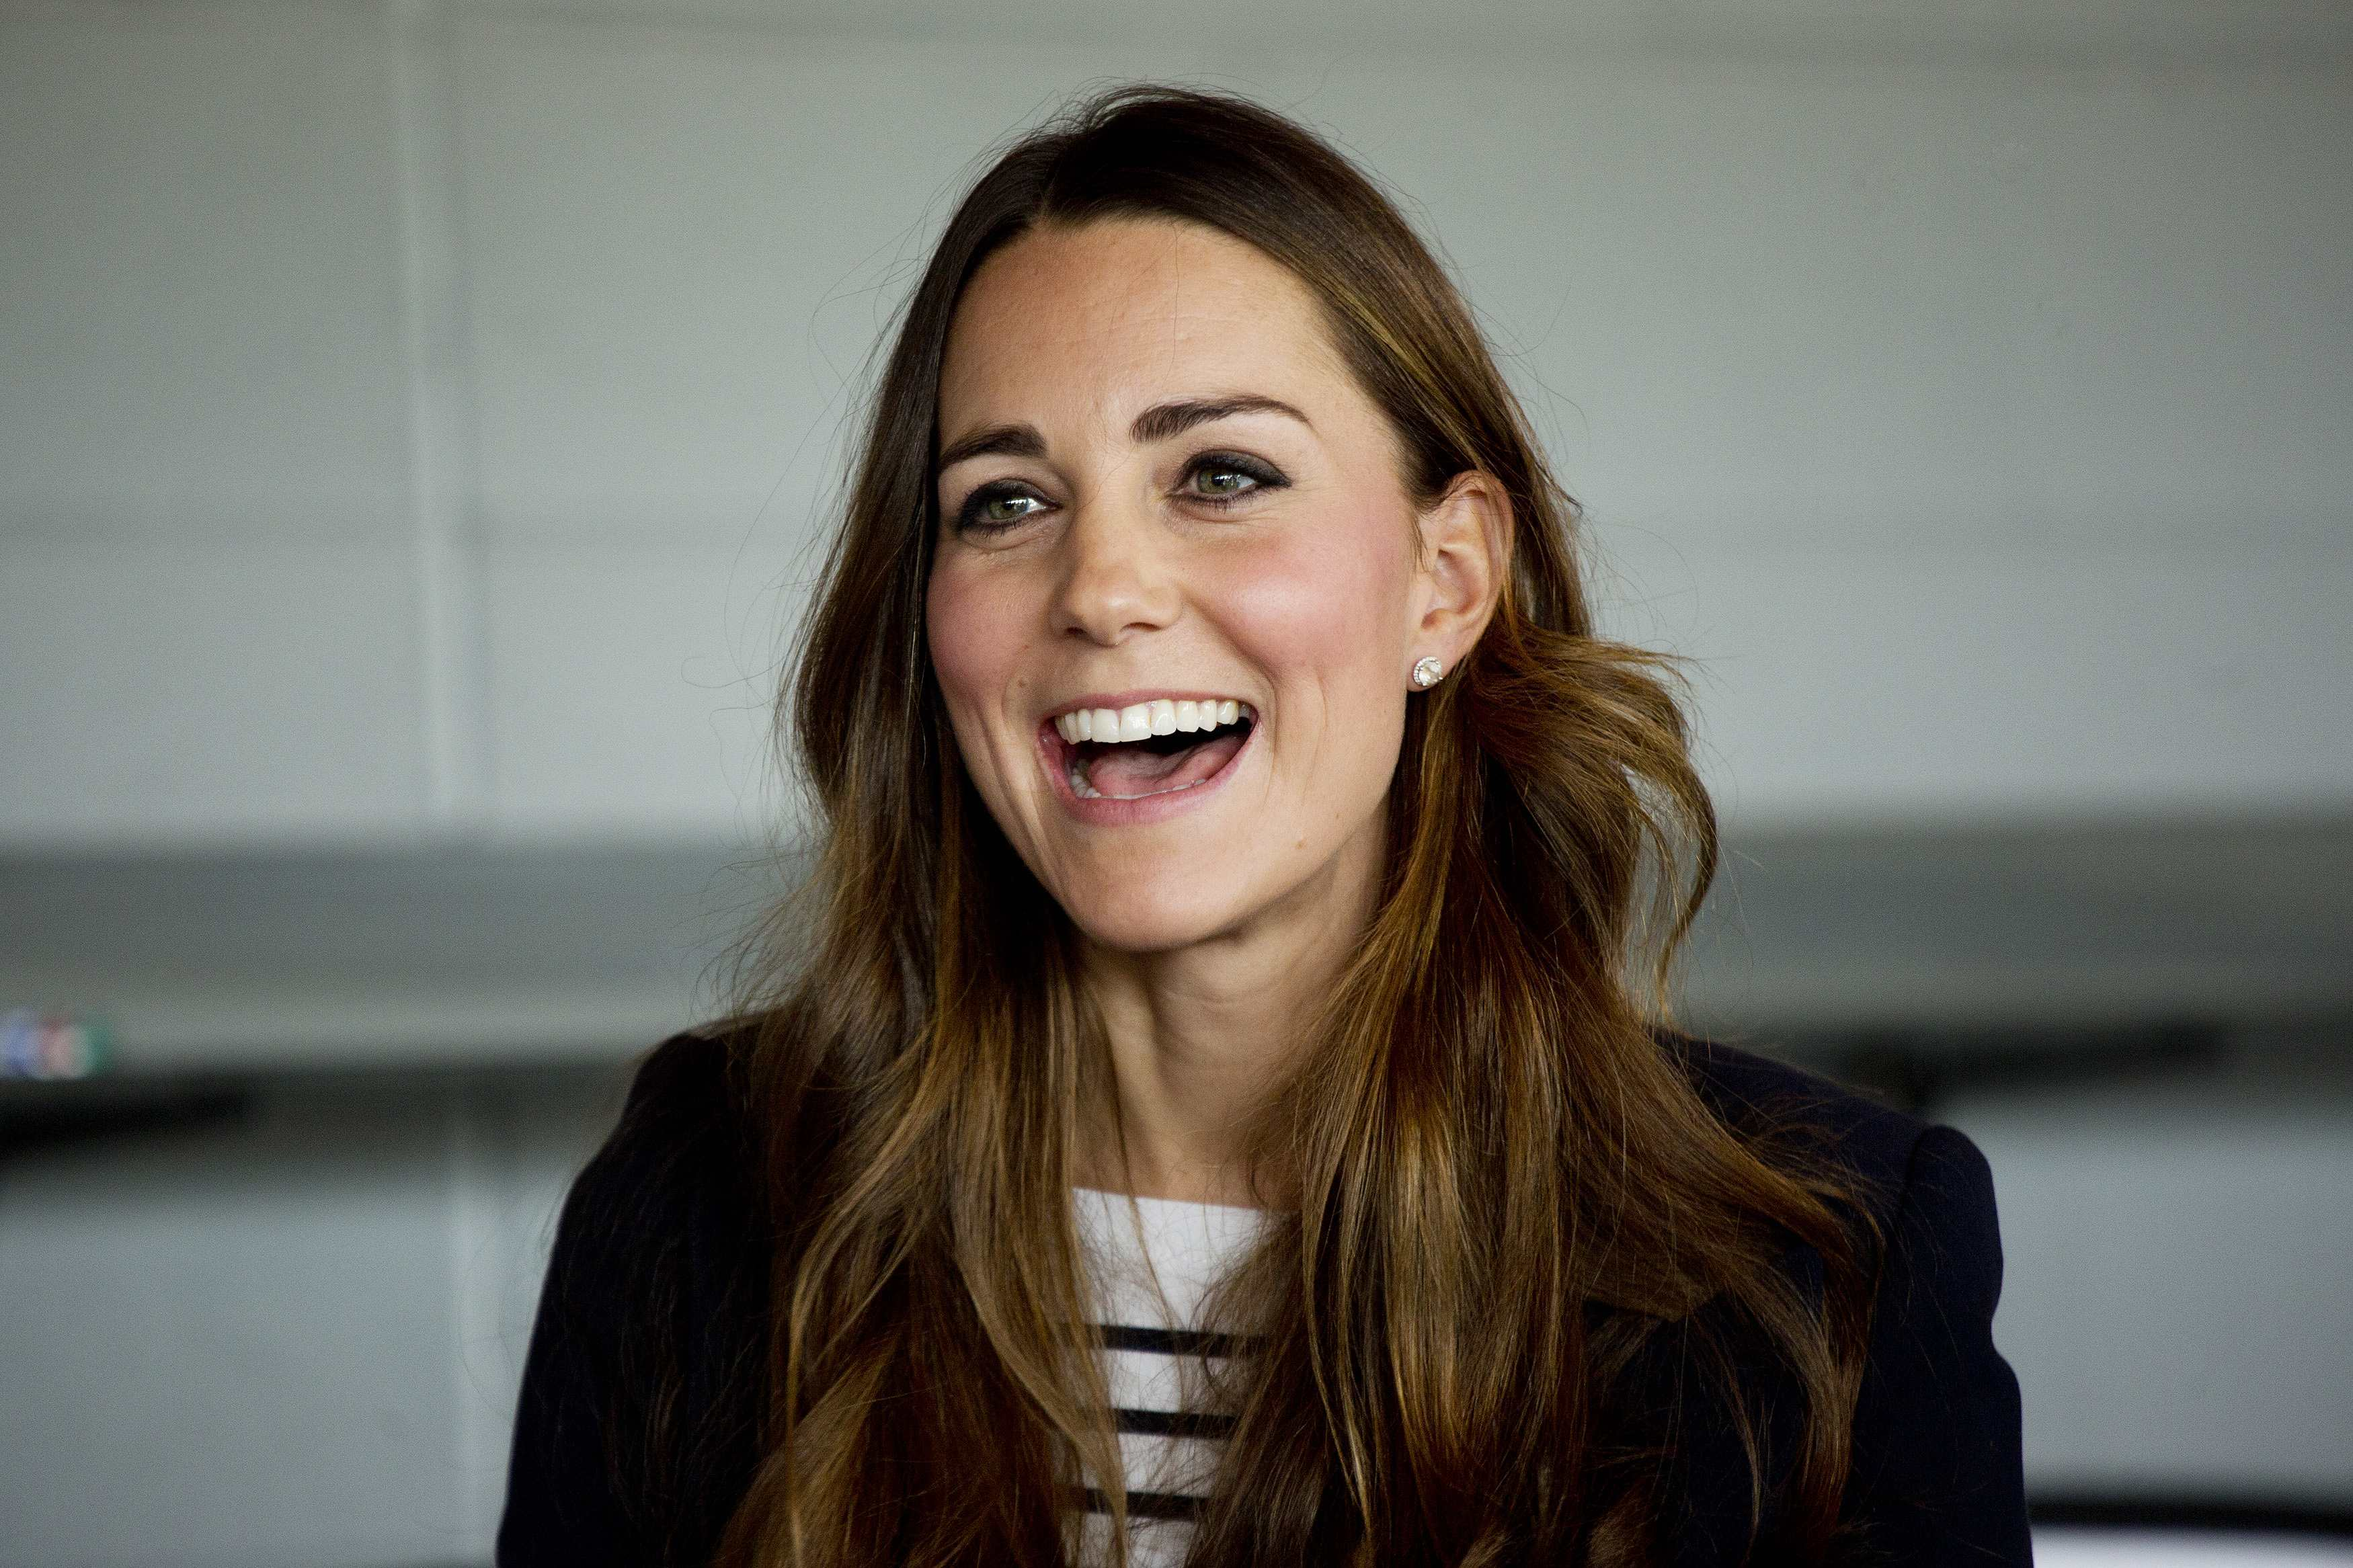 kate middleton smile widescreen wallpaper 60862